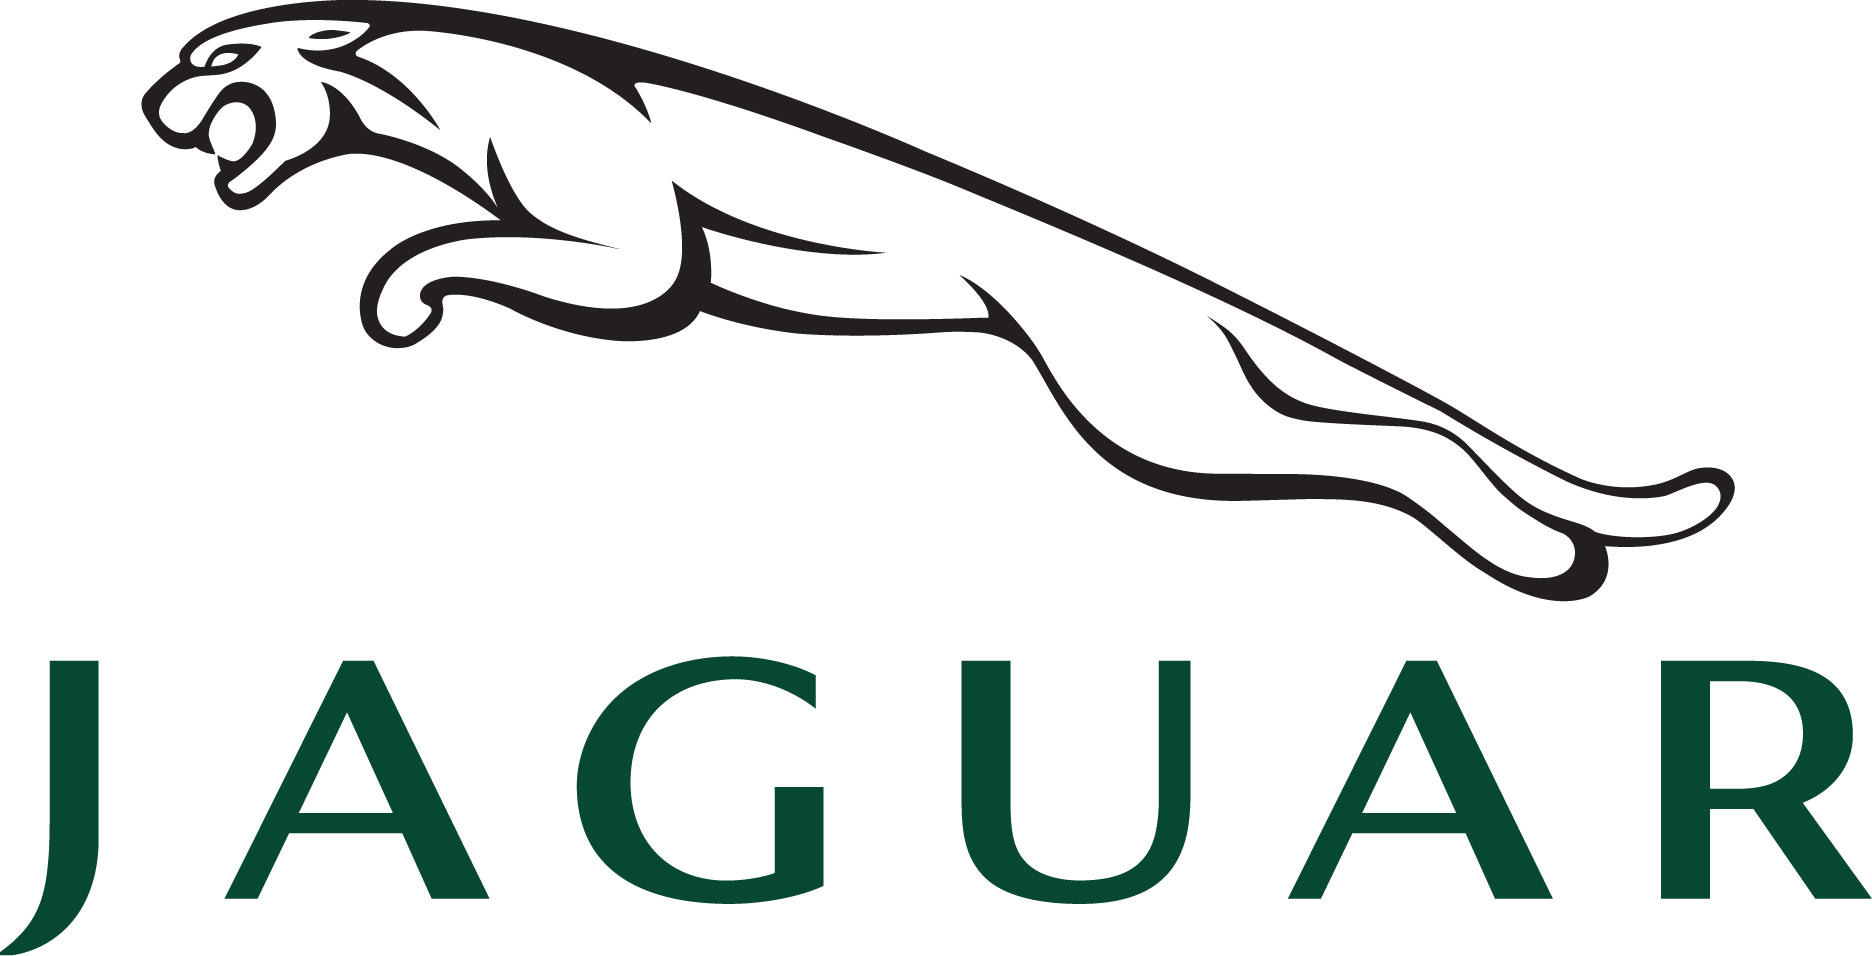 http://rudybarajas7.files.wordpress.com/2009/11/new_jaguar_logo__2_.jpg